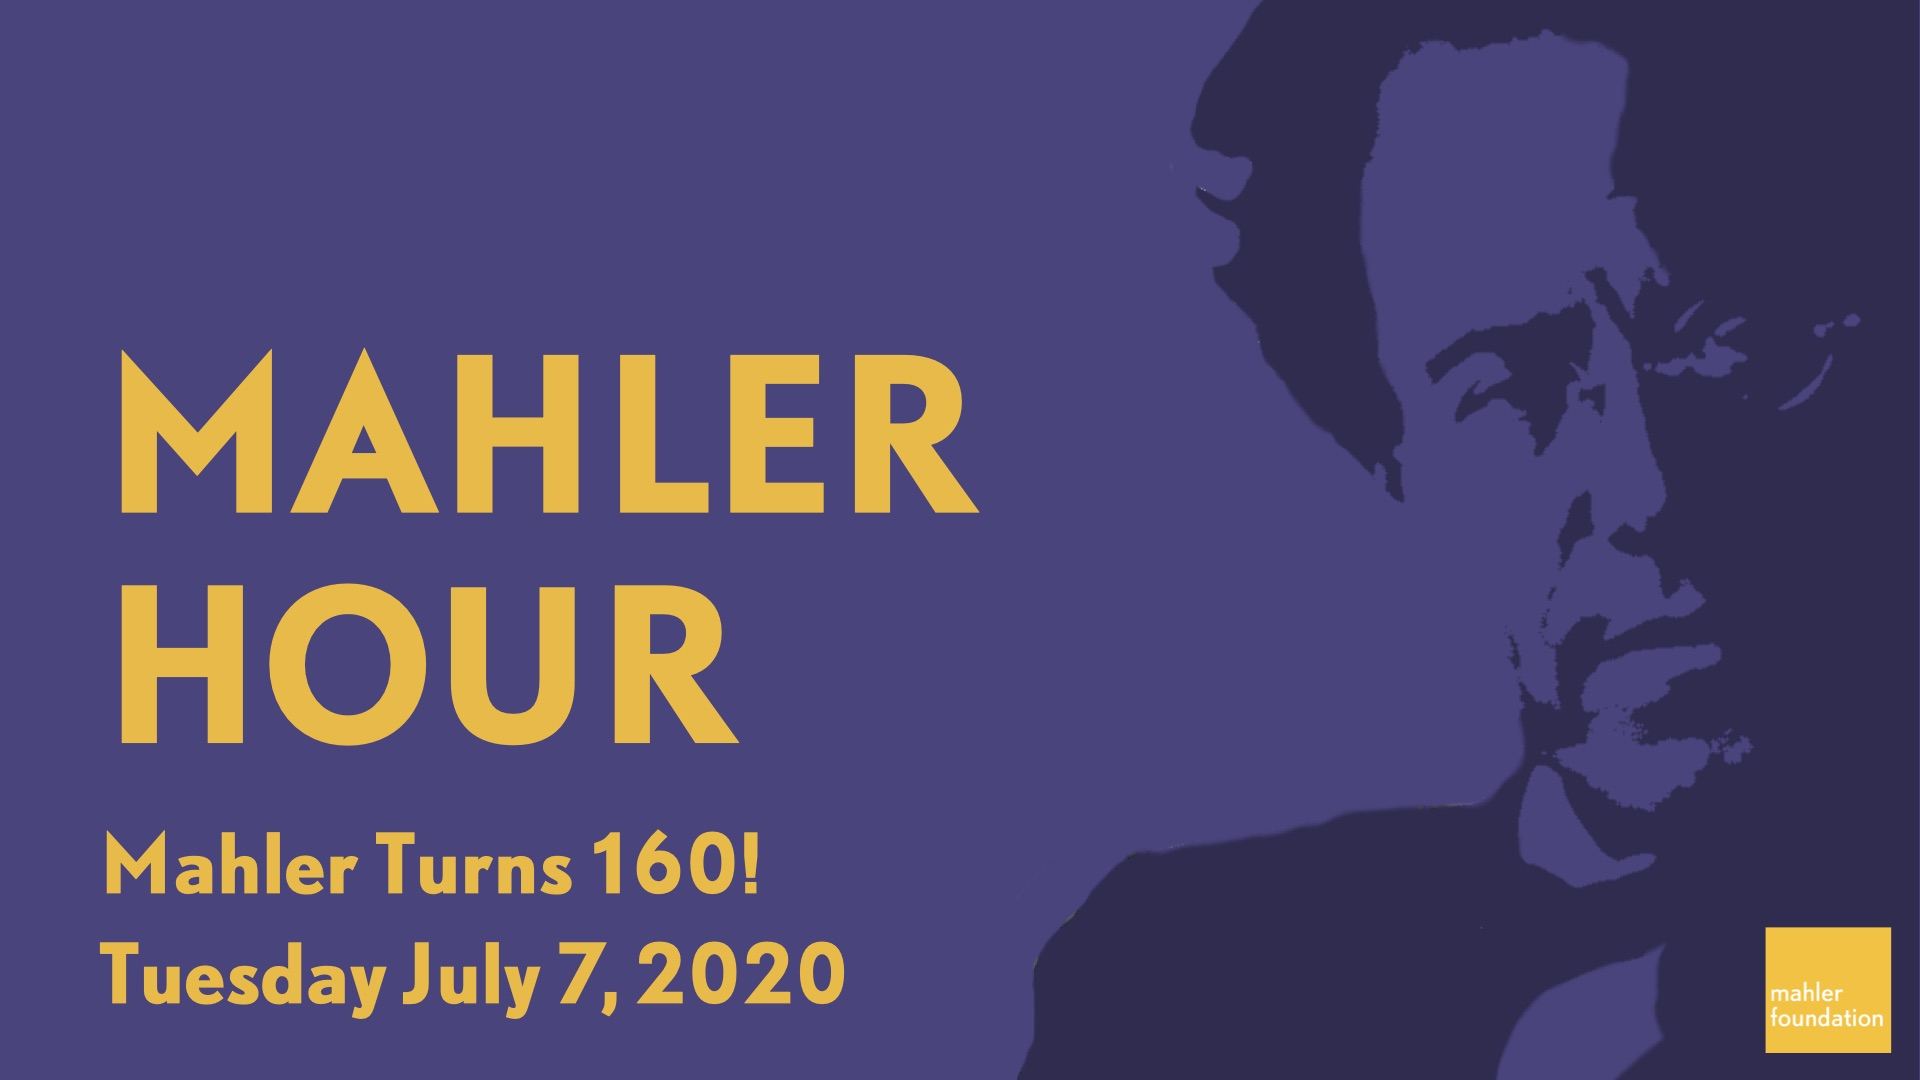 Second Mahler Hour